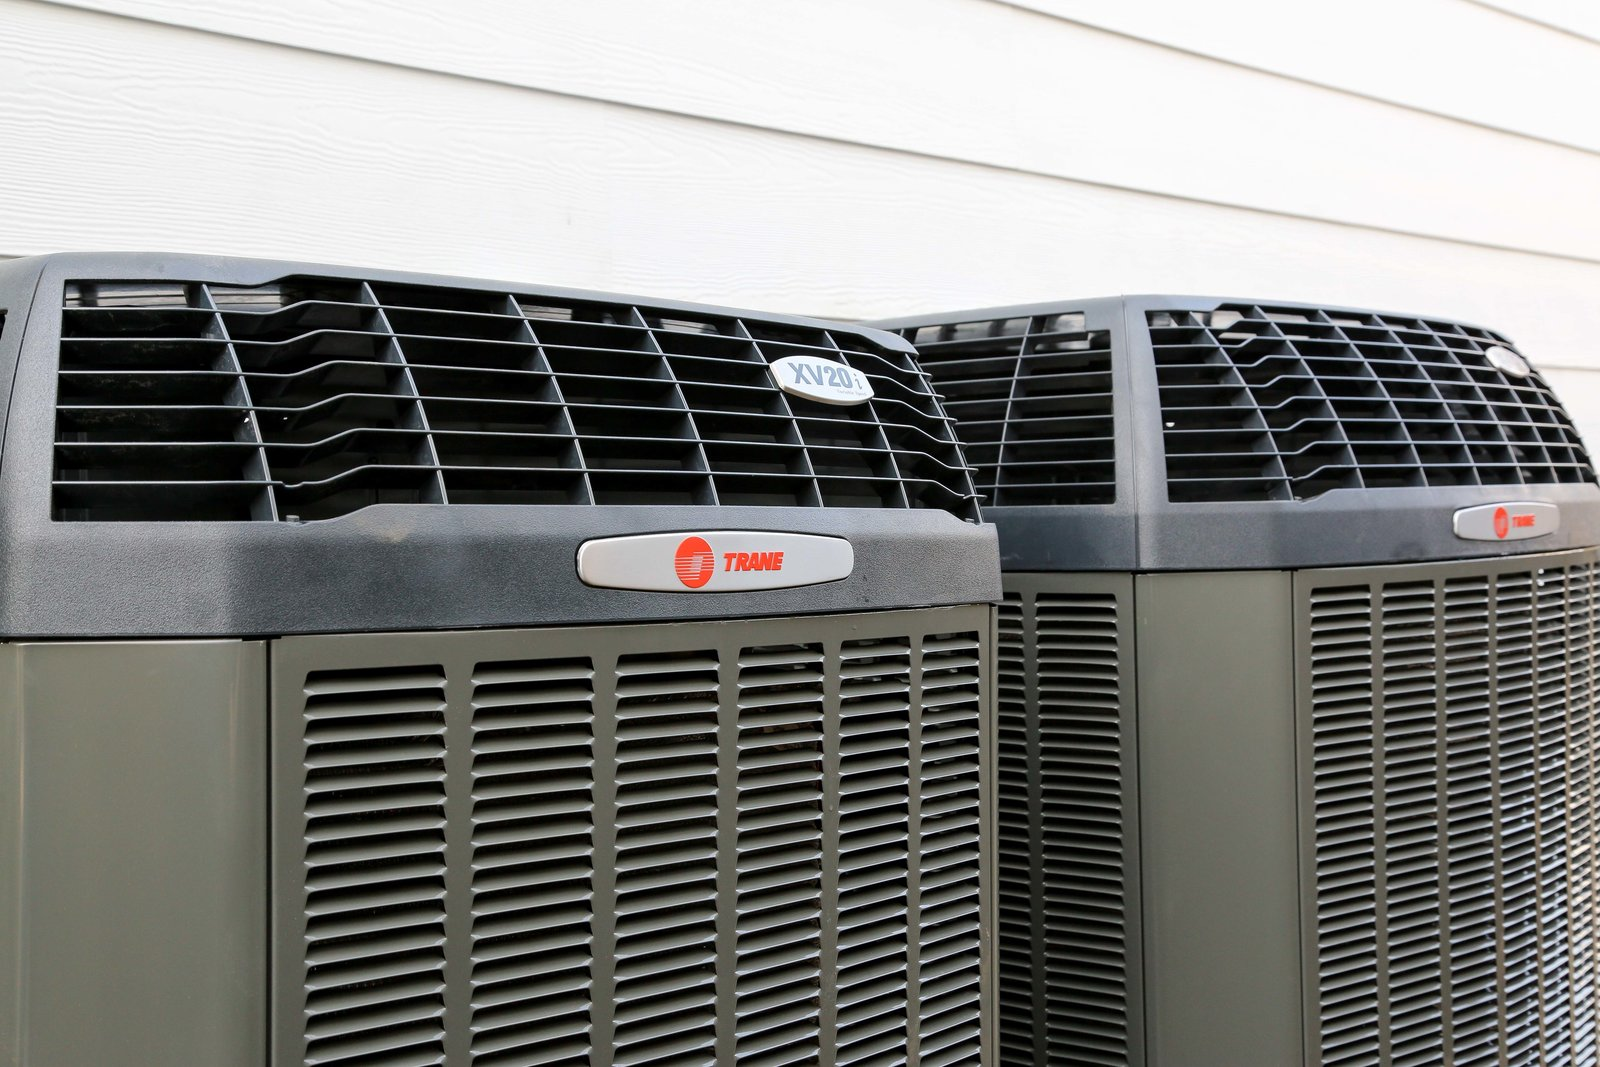 Trane's XV20i TruComfort™ Variable Speed air conditioner provides the ultimate in climate control and maximum efficiency. With 750 stages of comfort, it conserves energy while maintaining a perfectly cooled home all summer long.  Photo 4 of 6 in 4 Ways to Keep Your Home Cool and Save Energy This Summer